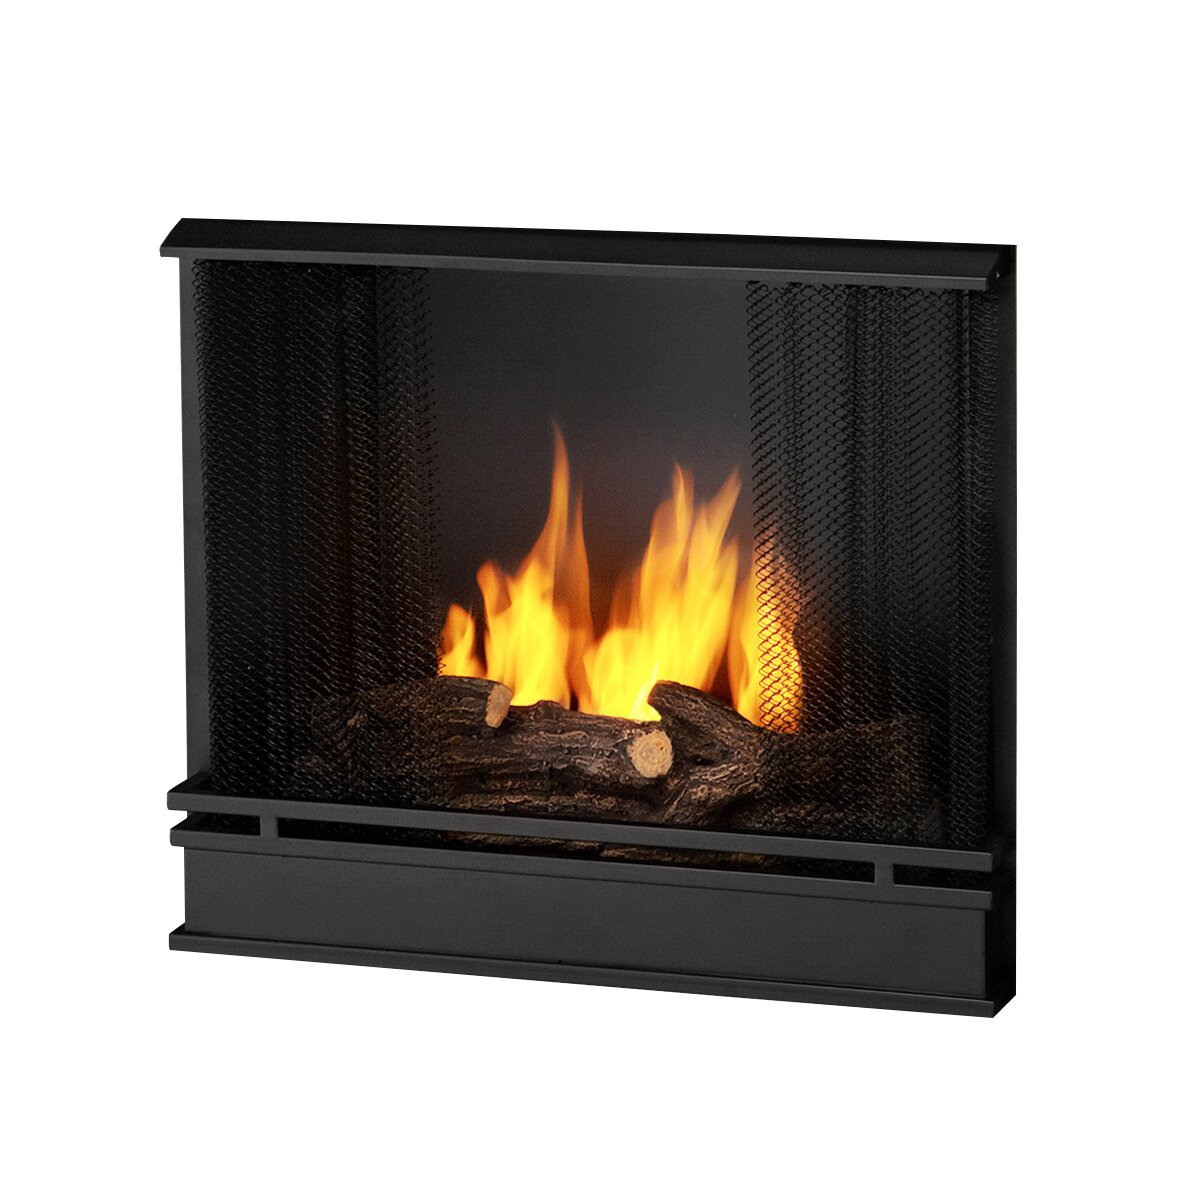 Real Flame Chateau Corner Gel Fuel Fireplace Reviews Wayfair Supply